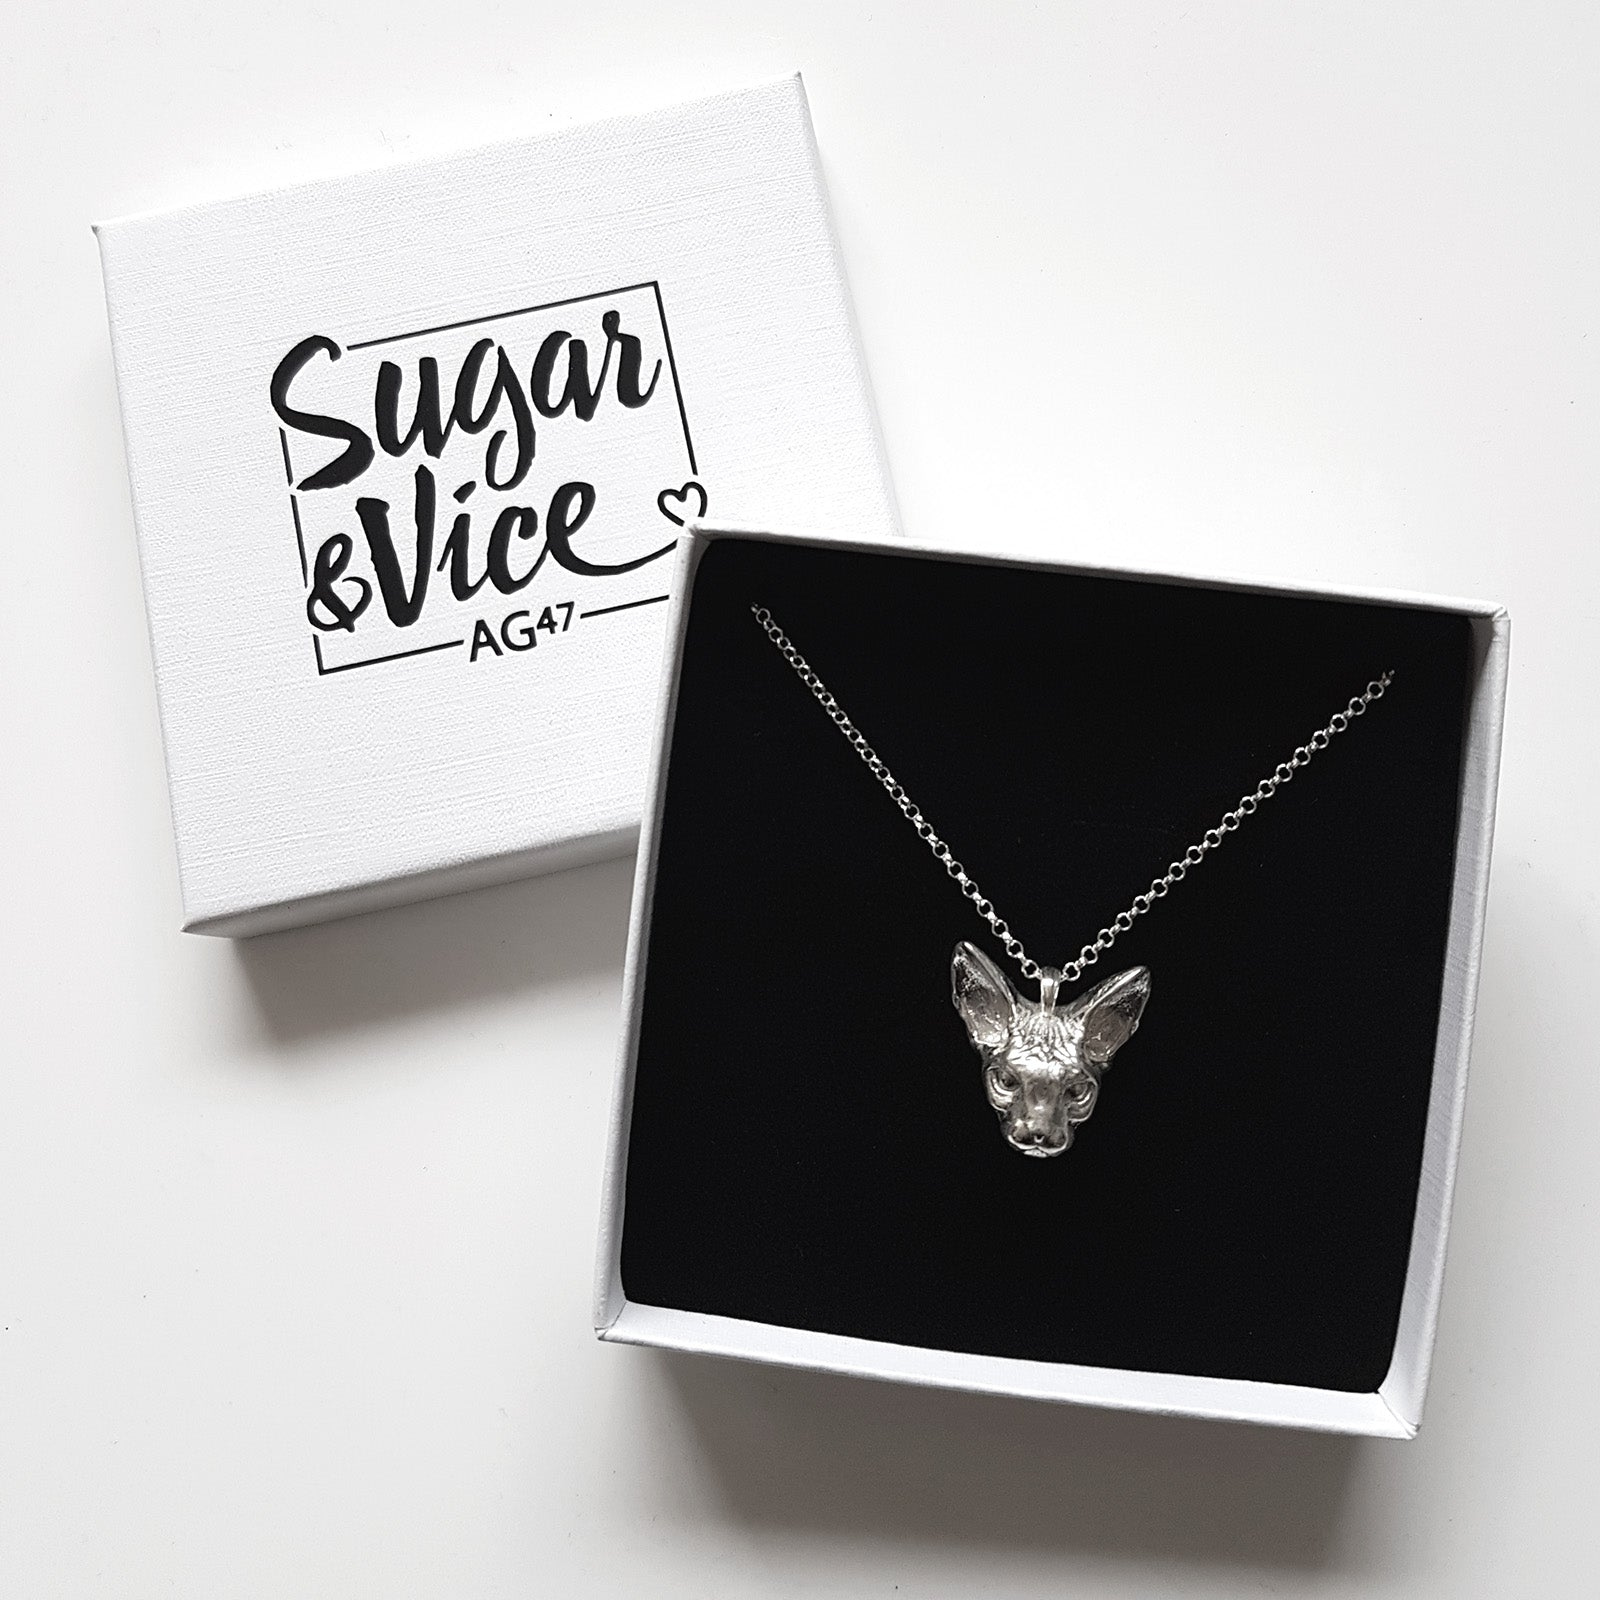 Sugar & Vice AG47 Cat Necklace